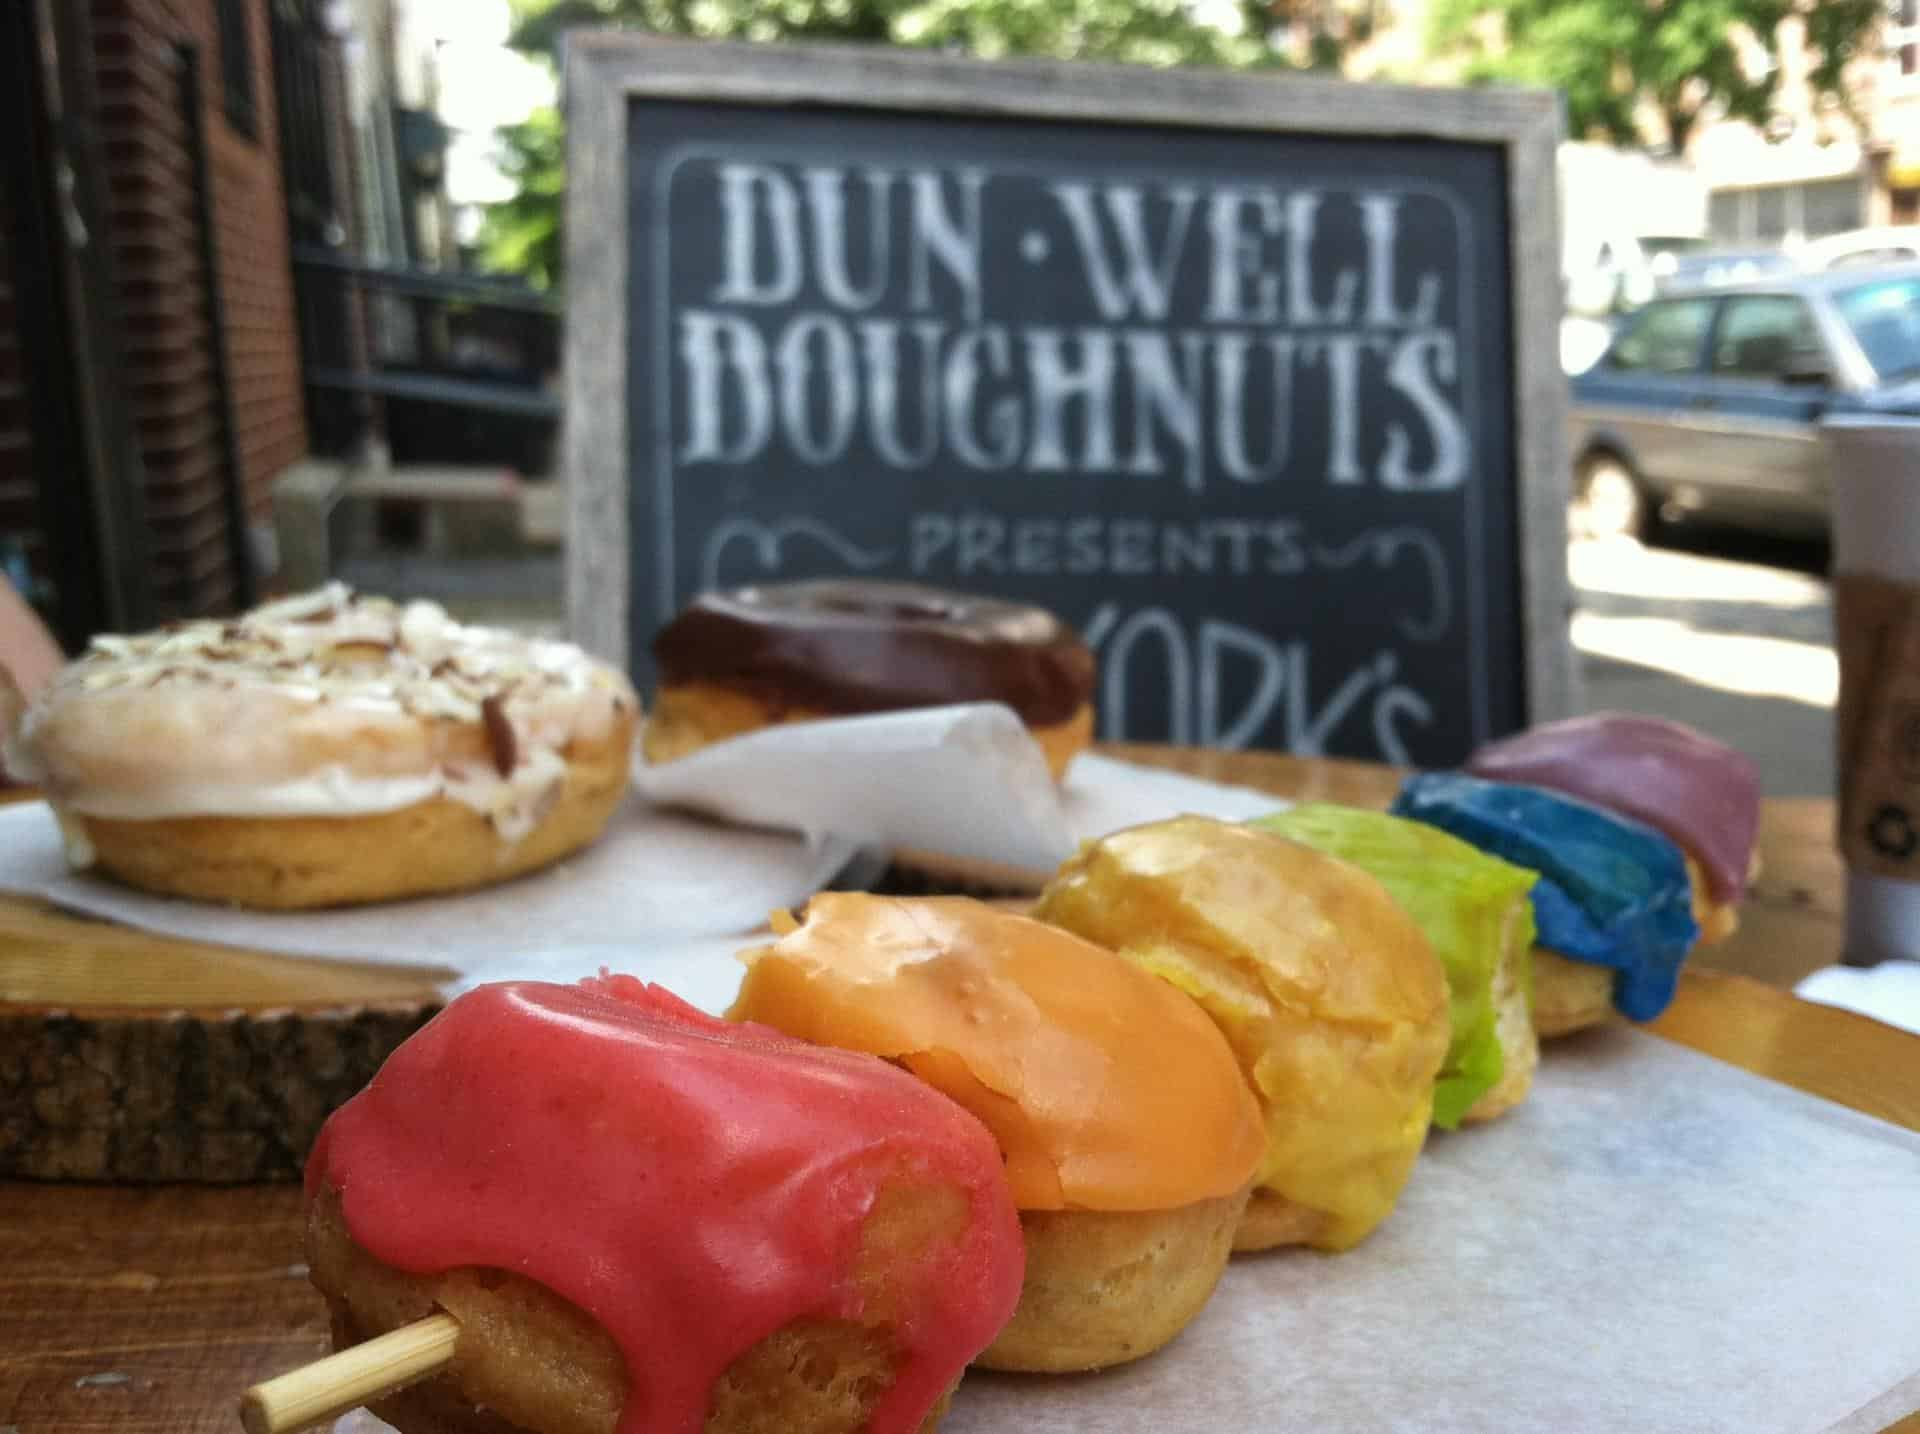 Dunwell doughnuts, photo by WTF Vegan Food